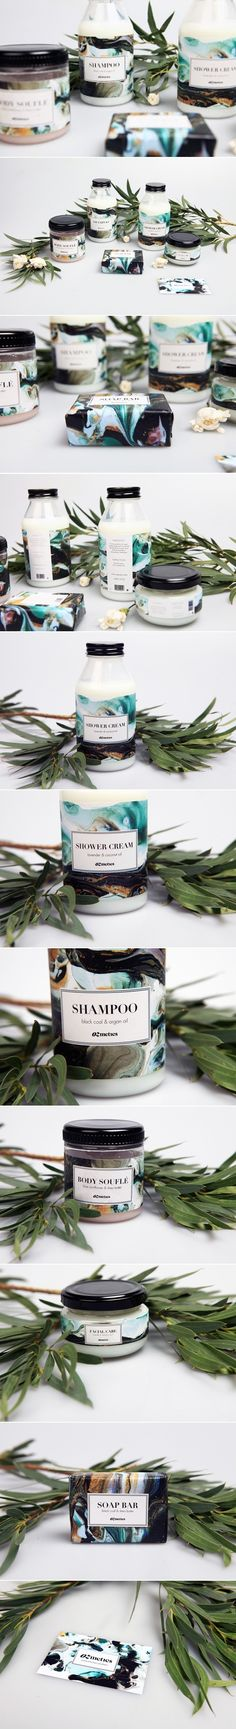 Branding and packaging design range for natural beauty products brand, Ozmetics. Designs for shampoo, shower cream, body souflé, facial cream and soap bar packaging Soap Packaging, Beauty Packaging, Cosmetic Packaging, Brand Packaging, Product Packaging, Candle Packaging, Design Packaging, Product Branding, Corporate Design